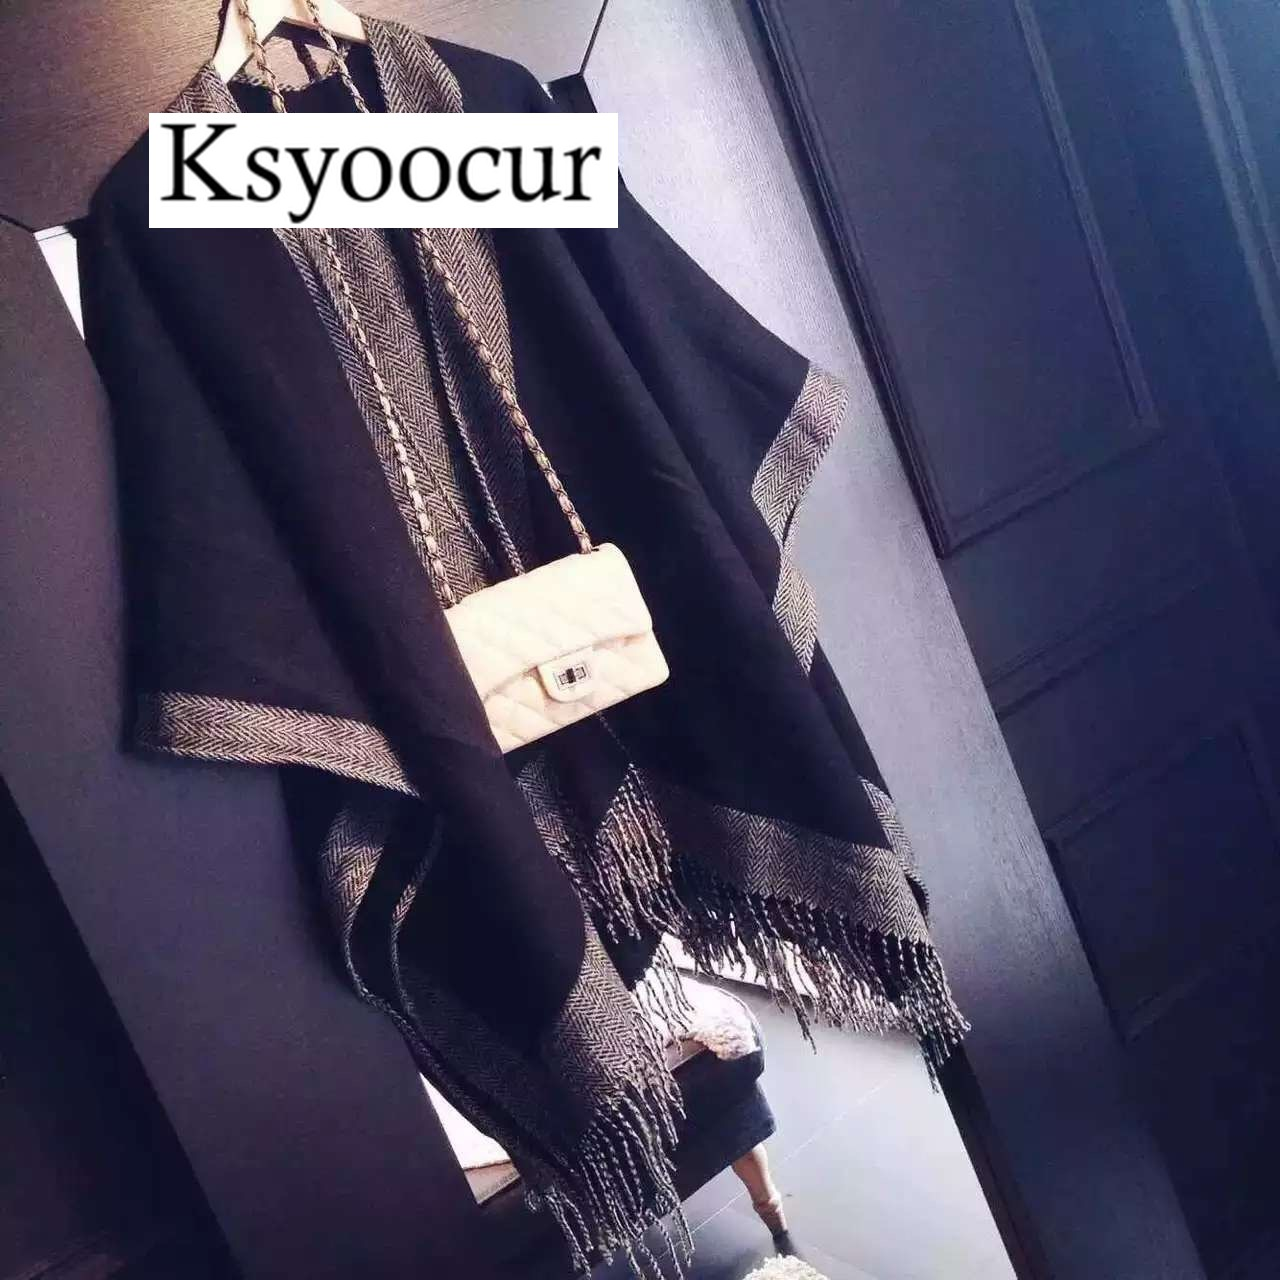 Size 190*65cm, 2020 New Autumn/Winter Long Section Cashmere Fashion Scarf Women Warm Shawls And Scarves Brand Ksyoocur E10